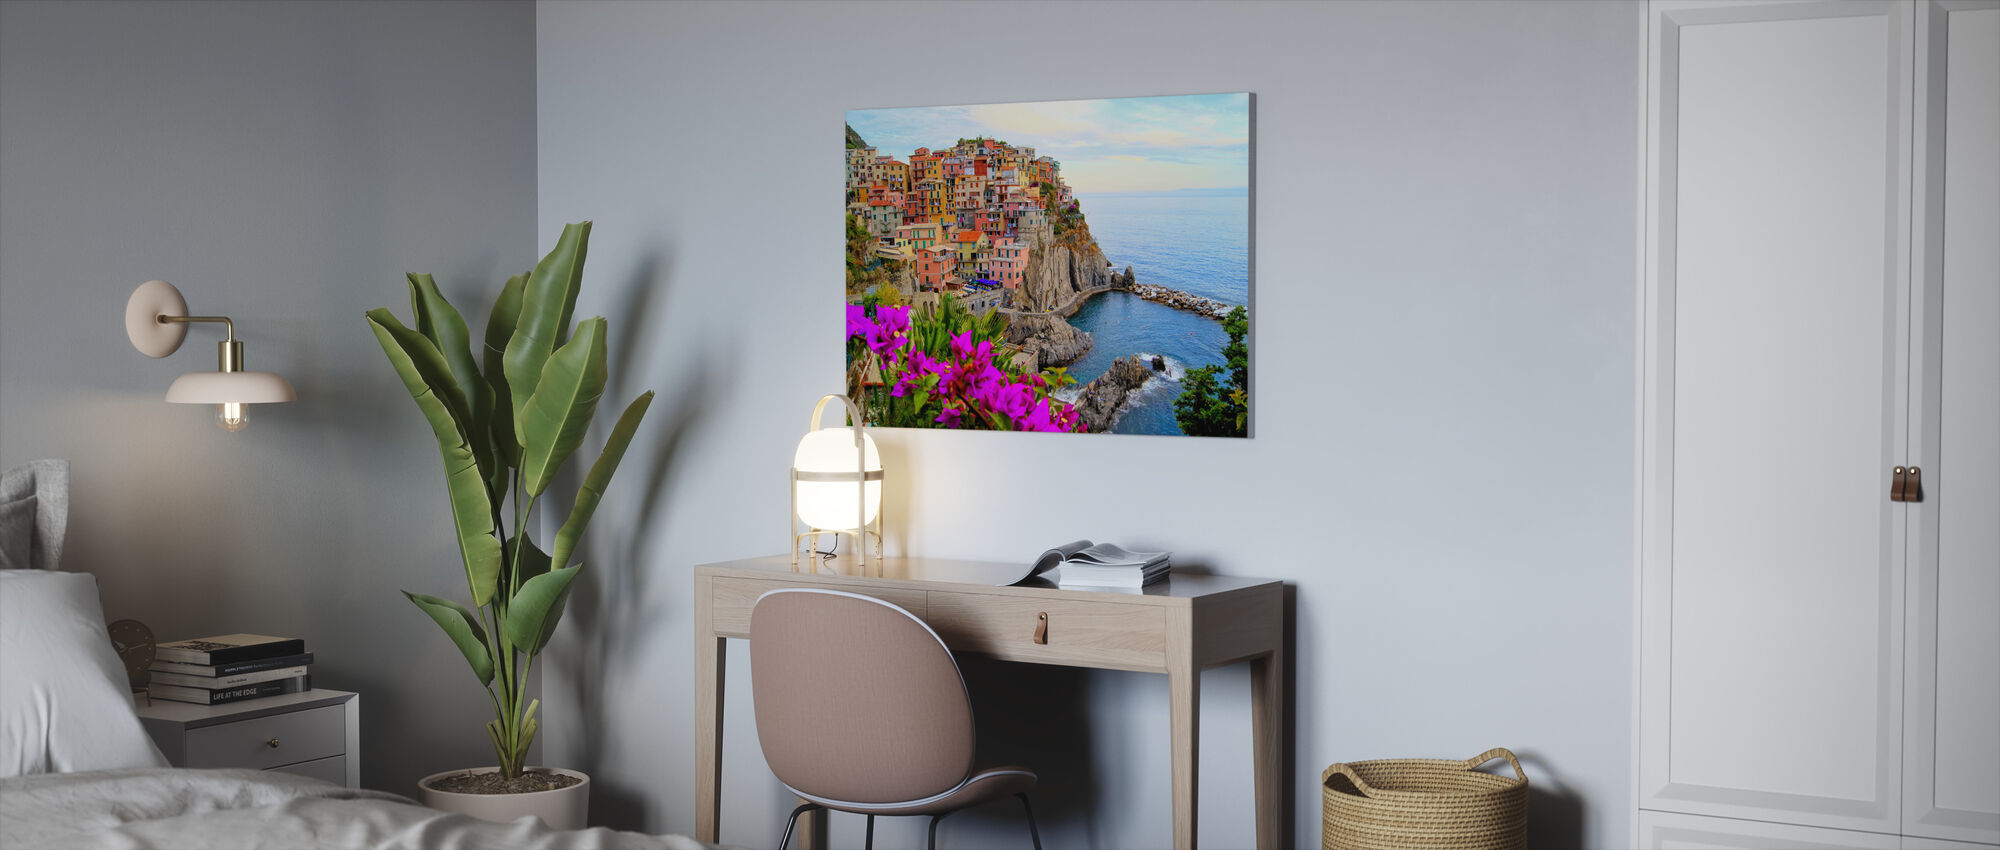 Village of Manarola, Italy - Canvas print - Office